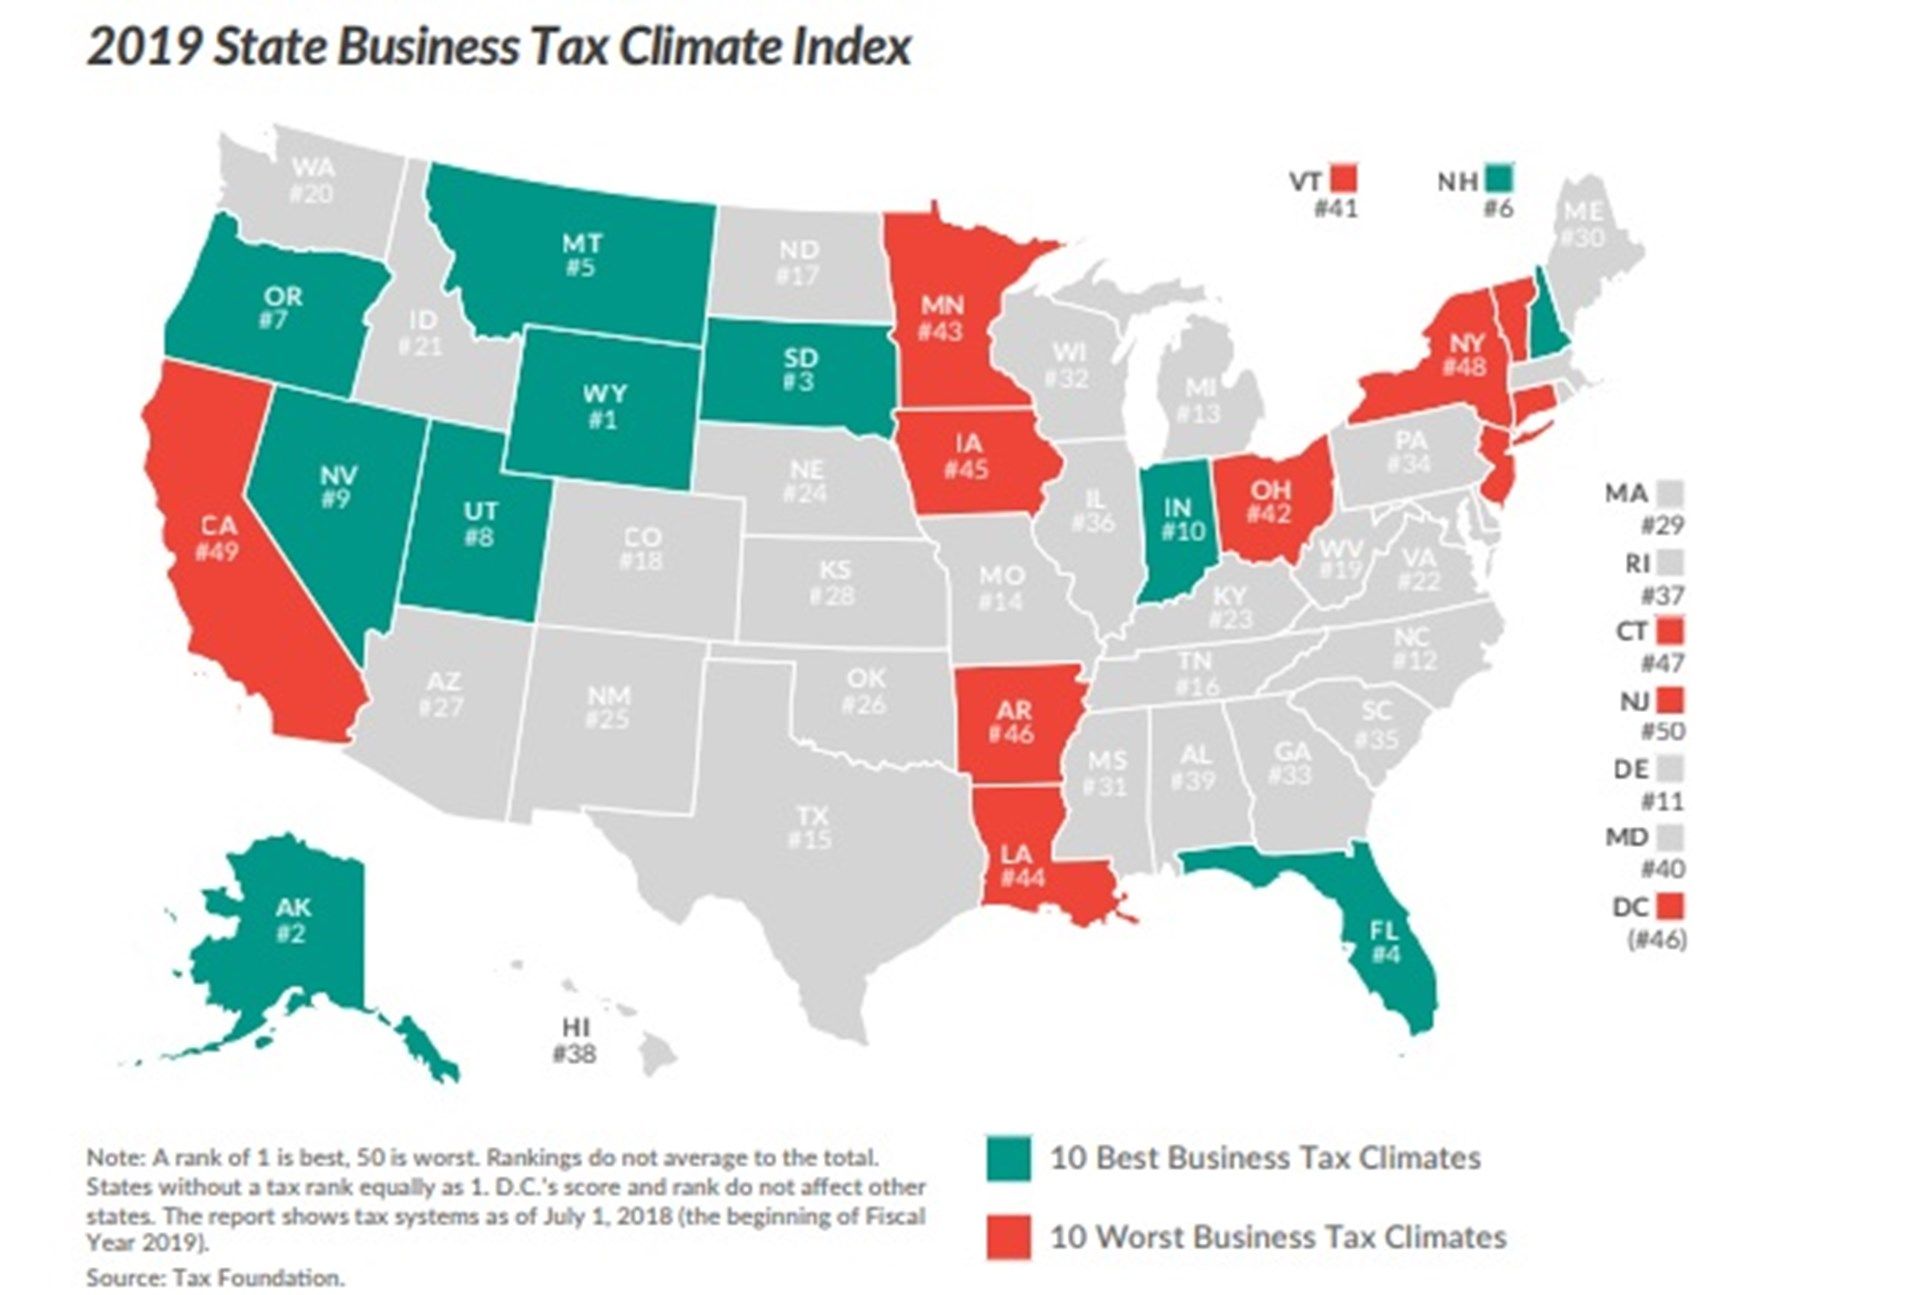 Best States For Taxes 2019 The 10 States with the Best Tax Systems (and the 10 Worst